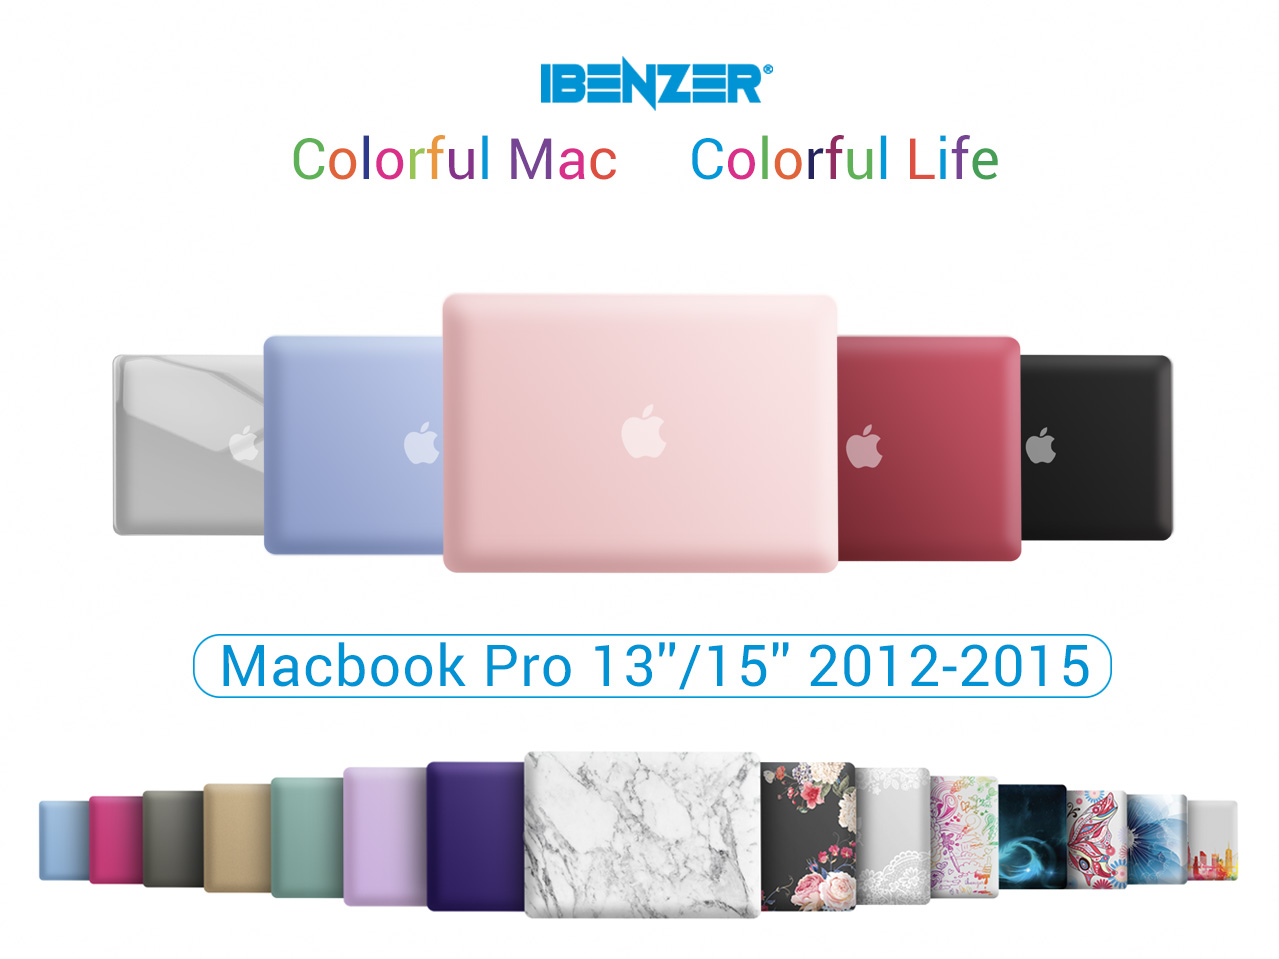 IBENZER MacBook Pro 13 Inch Case 2012-2015, Soft Touch Hard Case Shell Cover for Apple MacBook Pro 13 with Retina Display A1425 1502, Love, MMP13R-LOVE+1